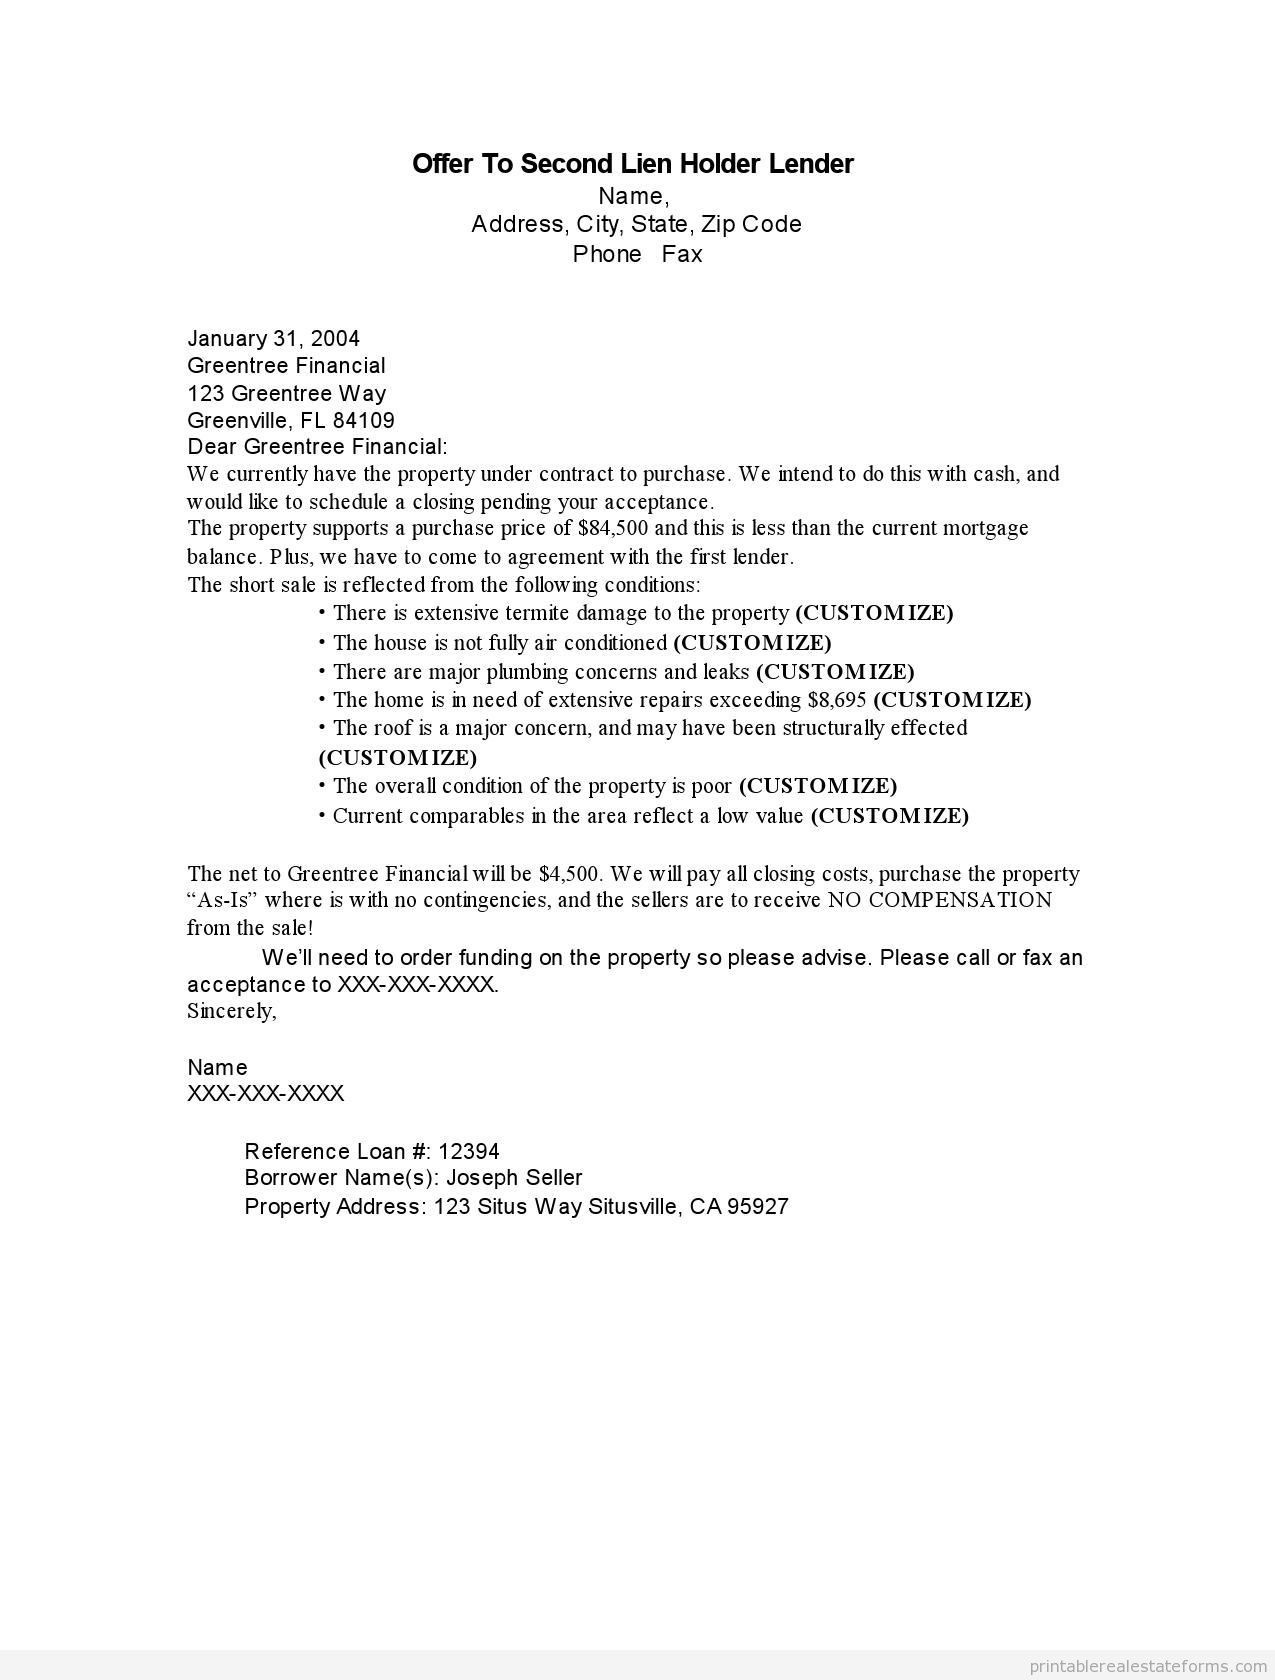 notice of lien letter template example-Letter Intent To Lien Sample Printable fer Second Holder Lender Form Notice Texas 11-n